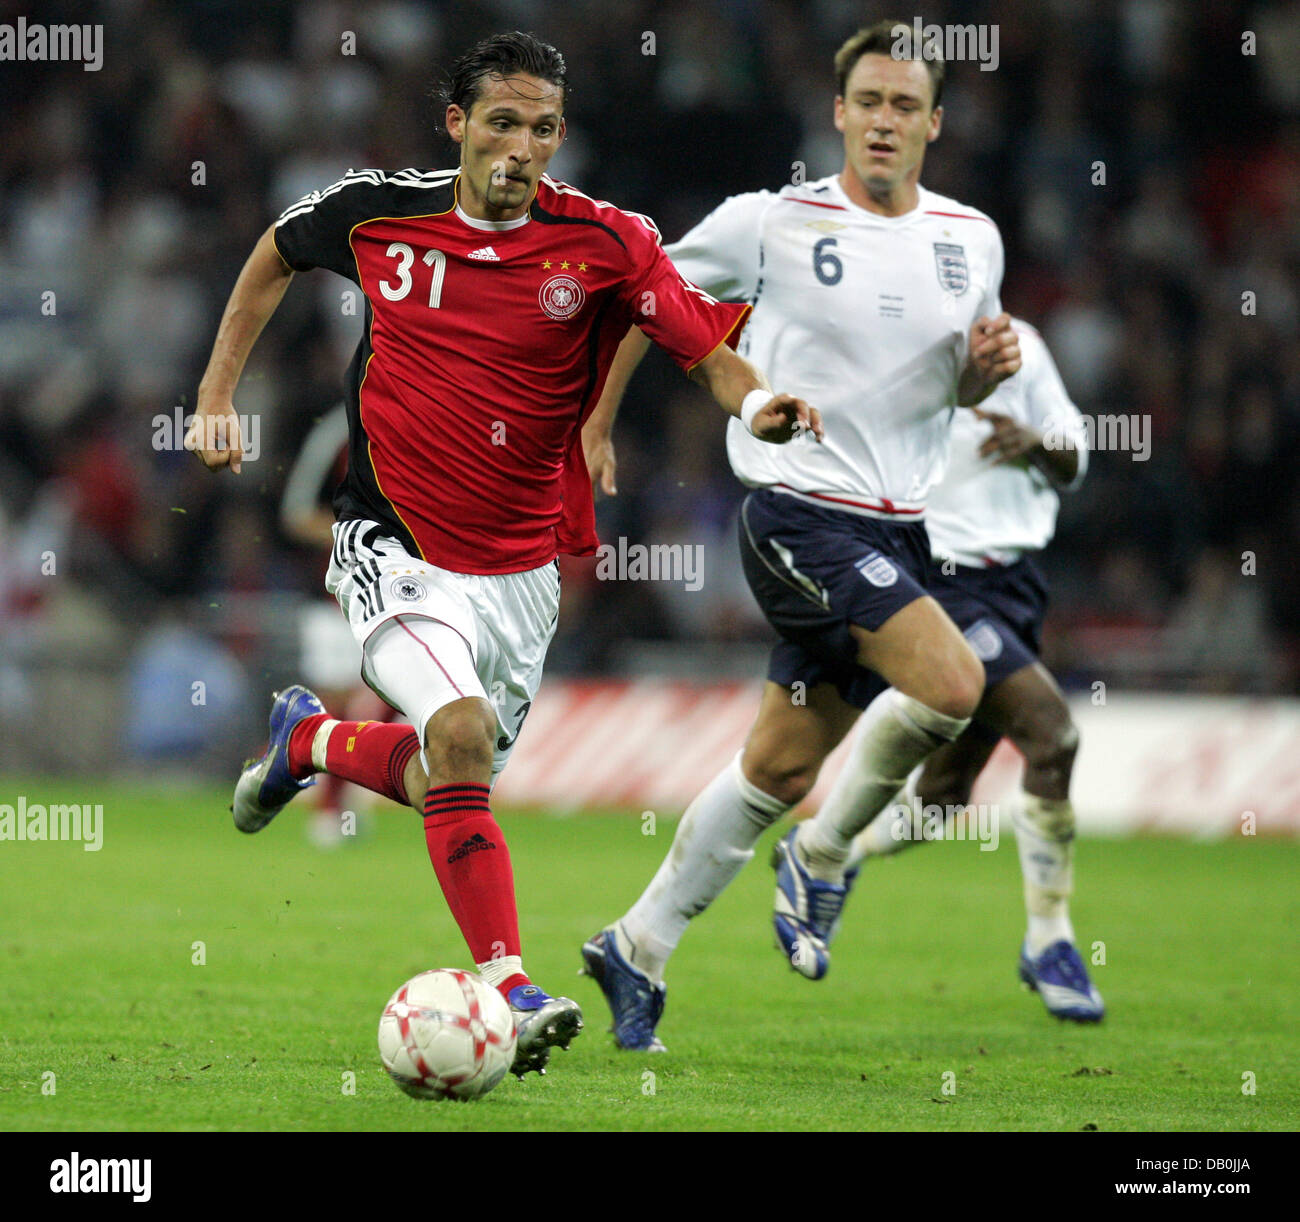 (dpa file) - Germany's Kevin Kuranyi (L) vies for the ball with England's John Terry (C) during the international Stock Photo